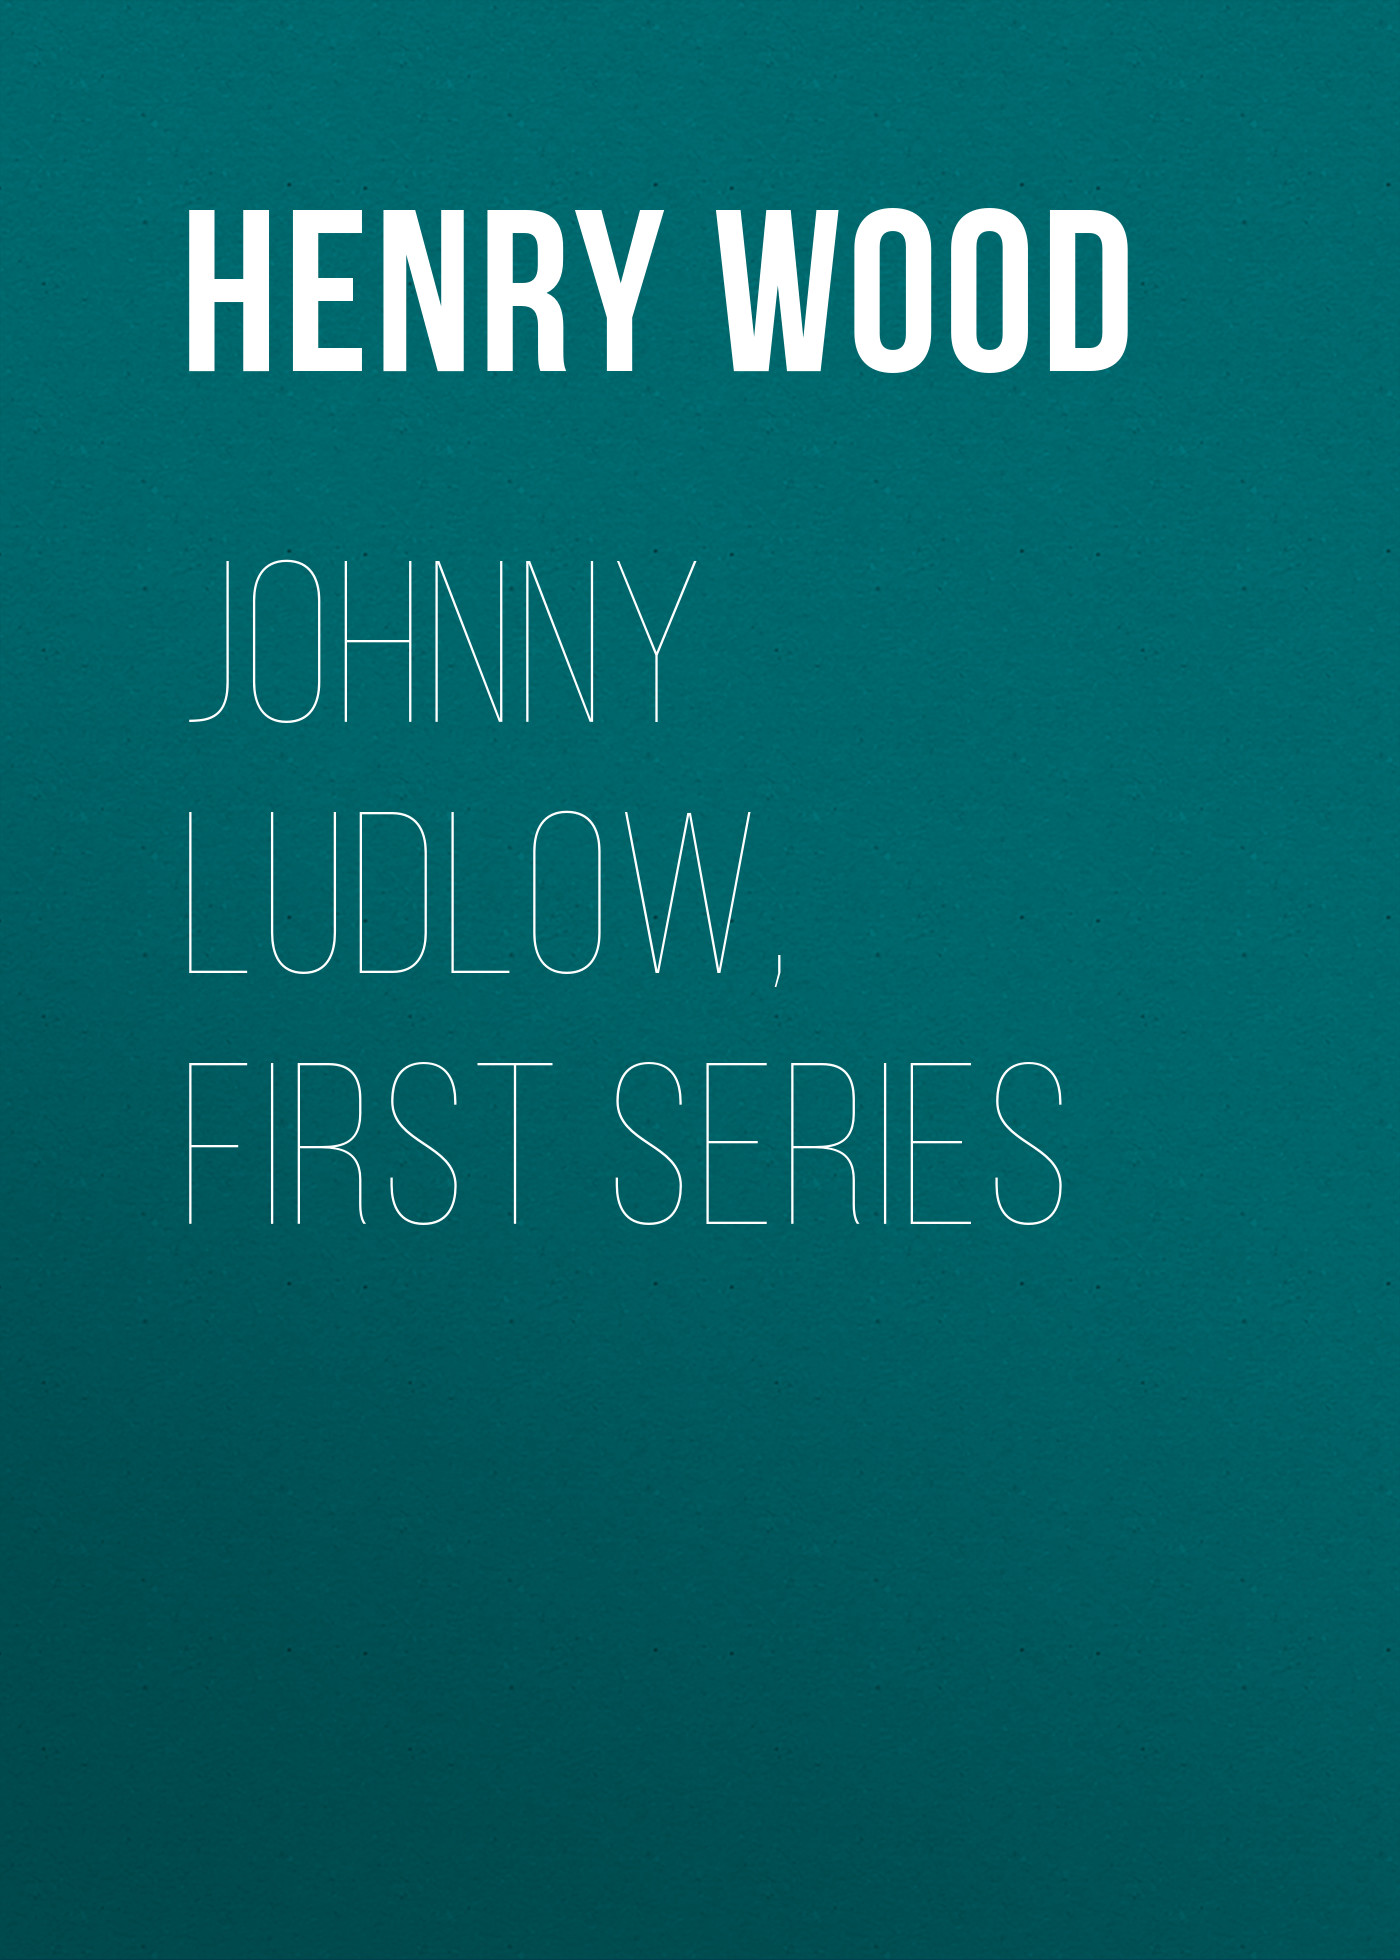 Henry Wood Johnny Ludlow, First Series henry wood east lynne